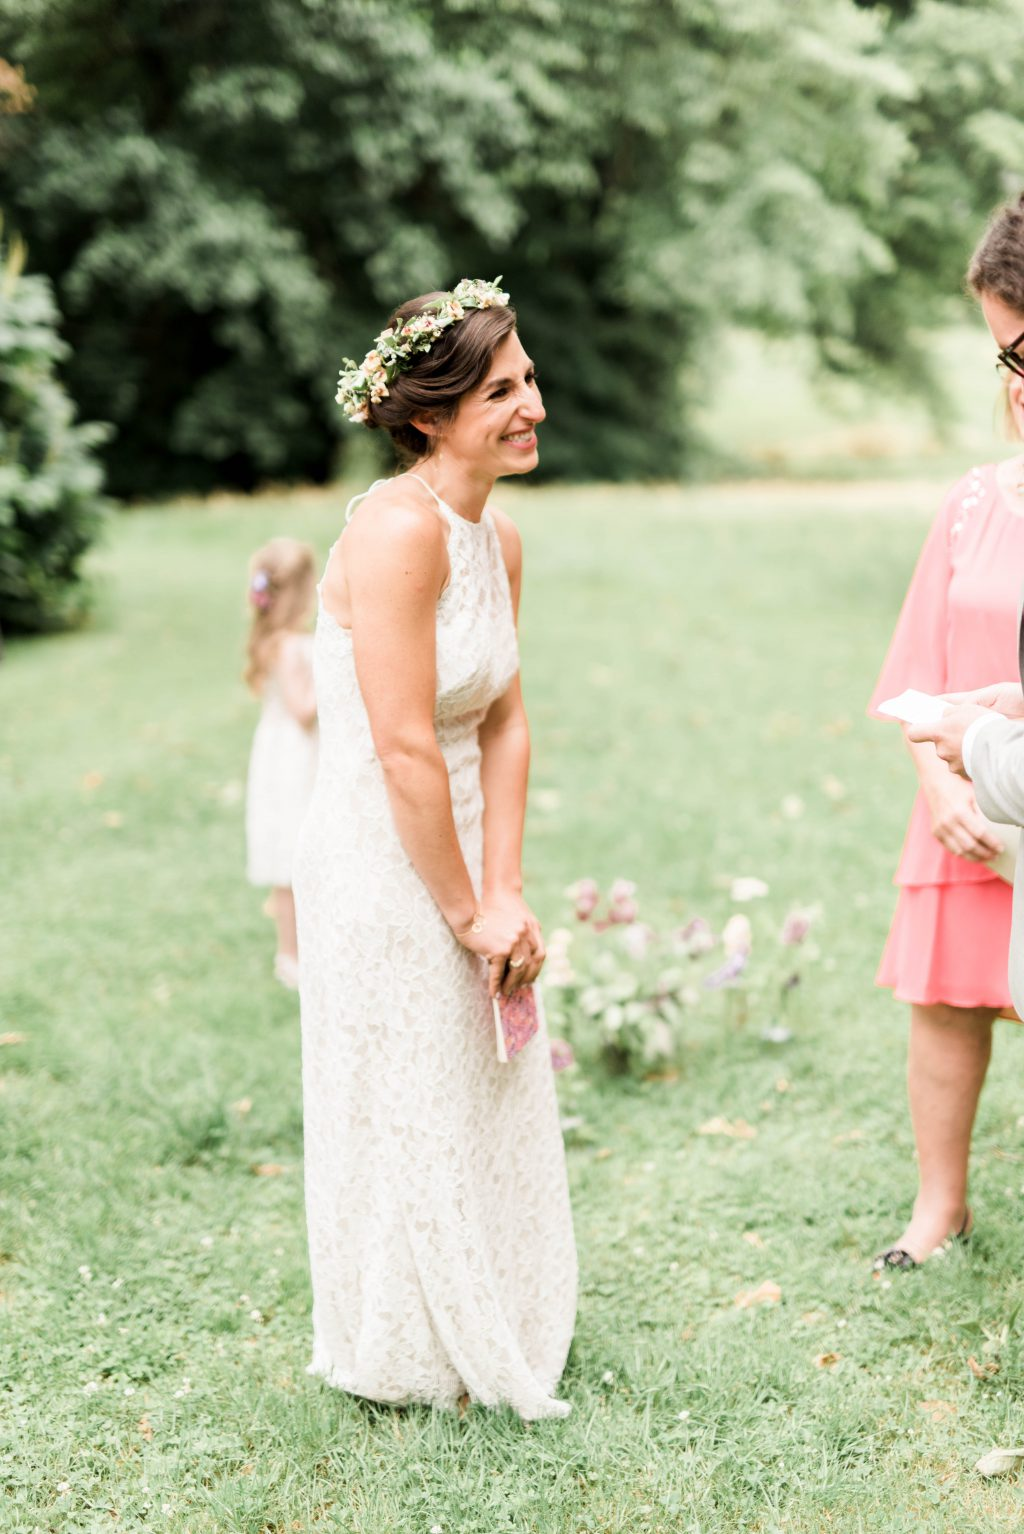 awbury-arboretum-wedding-DIY-boho-summer-haley-richter-photography-139